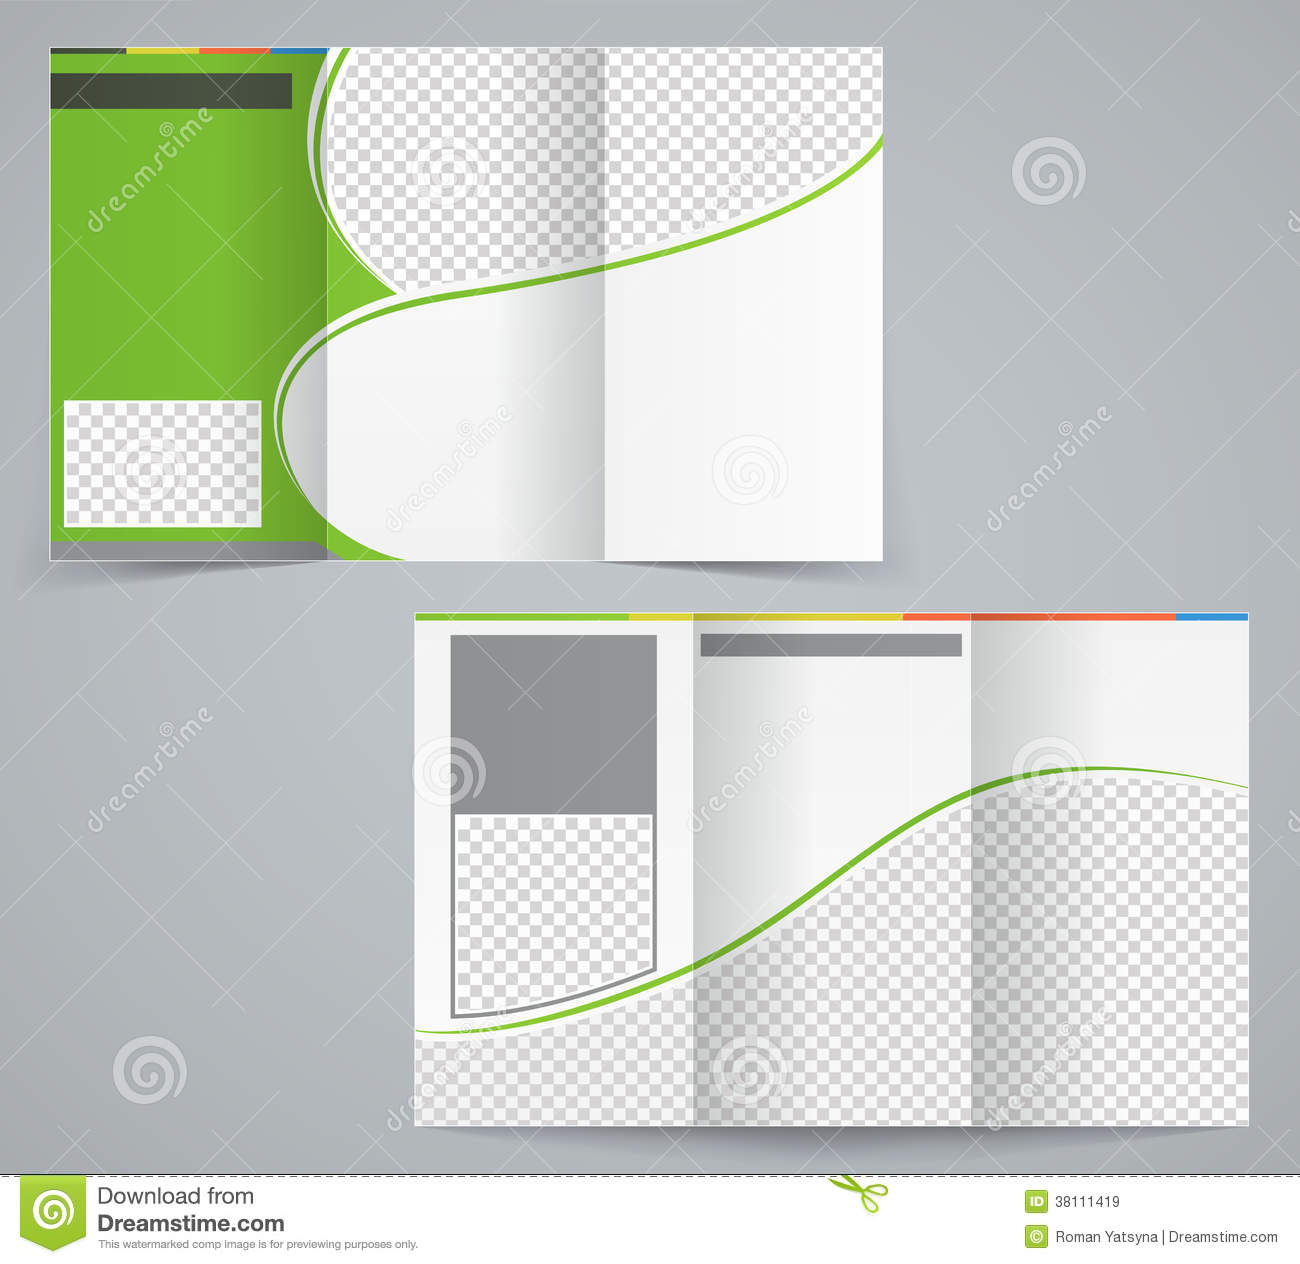 download comp - Folding Brochure Template Free